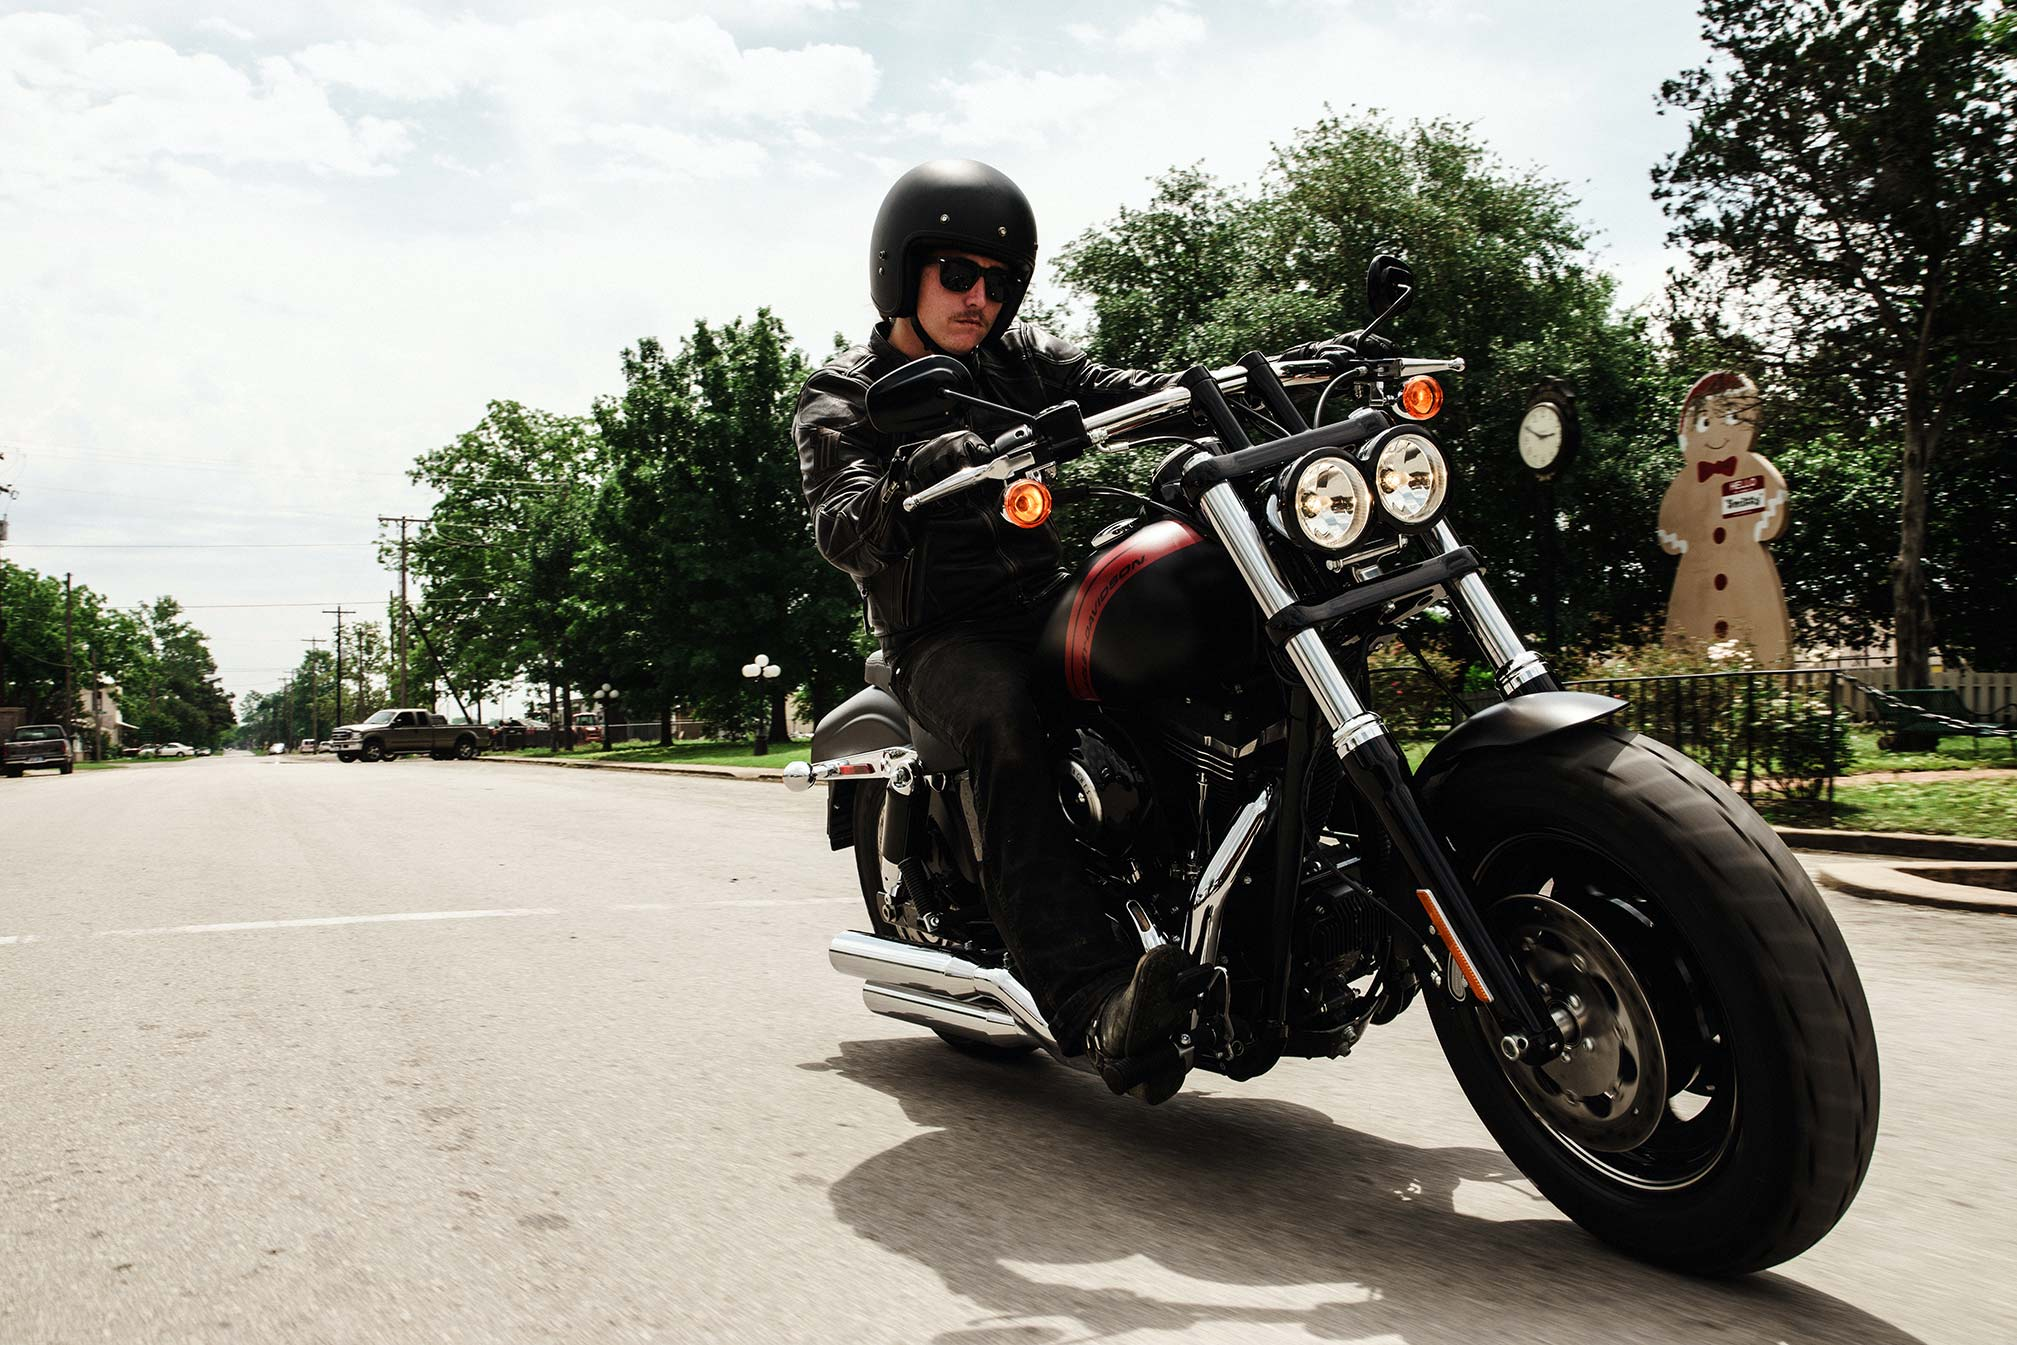 2017 Harley Davidson Fat Bob Review Touring Throttle By Wire Jumper Harness Heated Grip Wiring